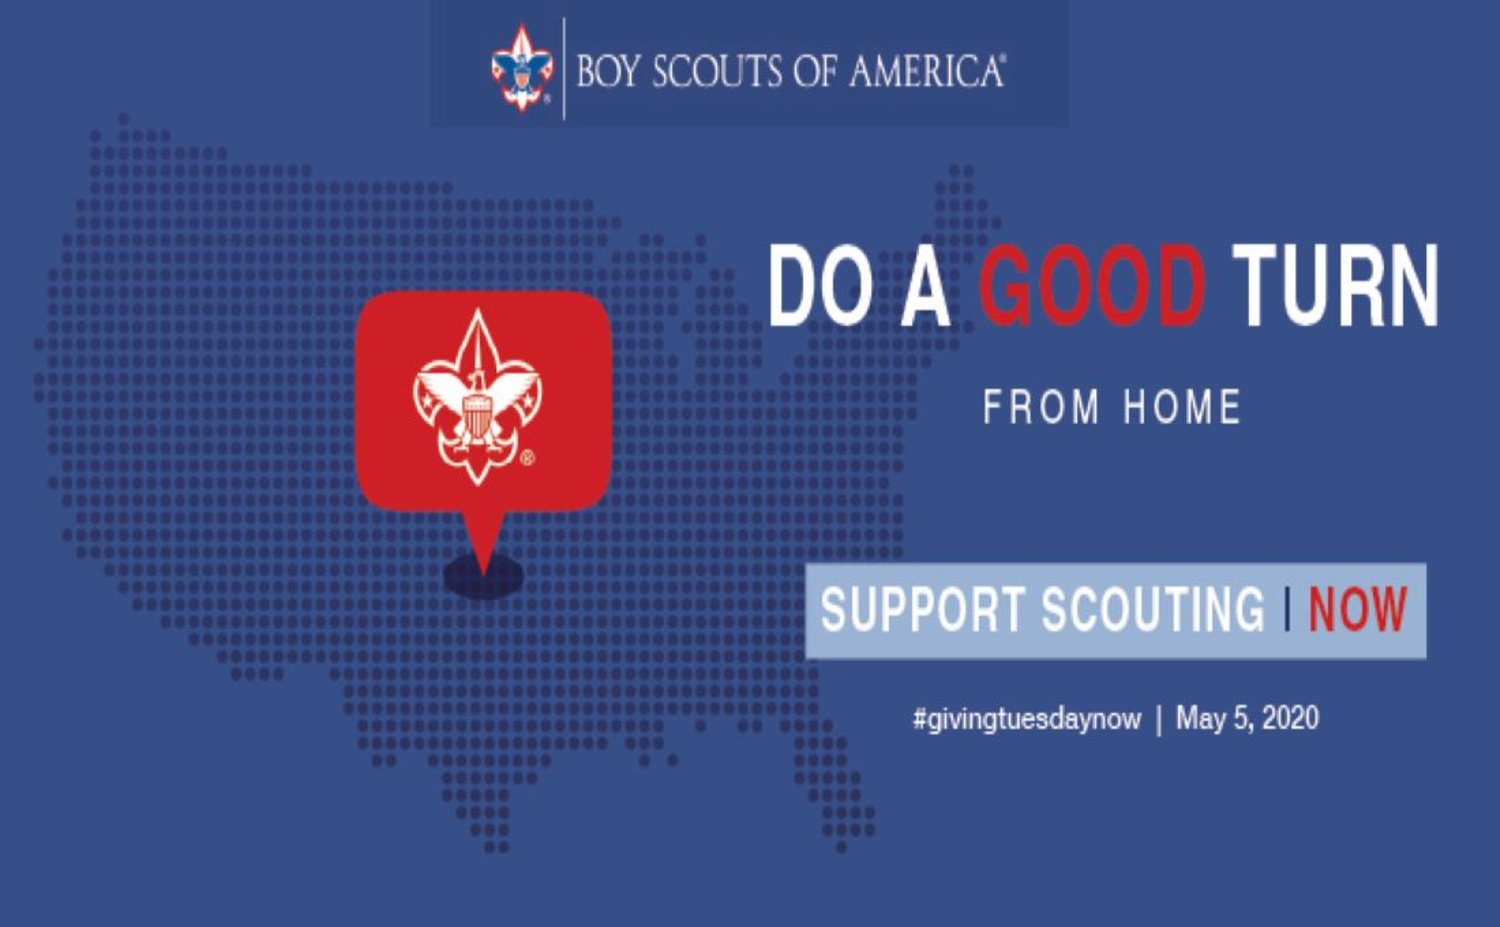 Scout Me In. Yes I want to donate in support of Robert E Knox Scout Reservation.